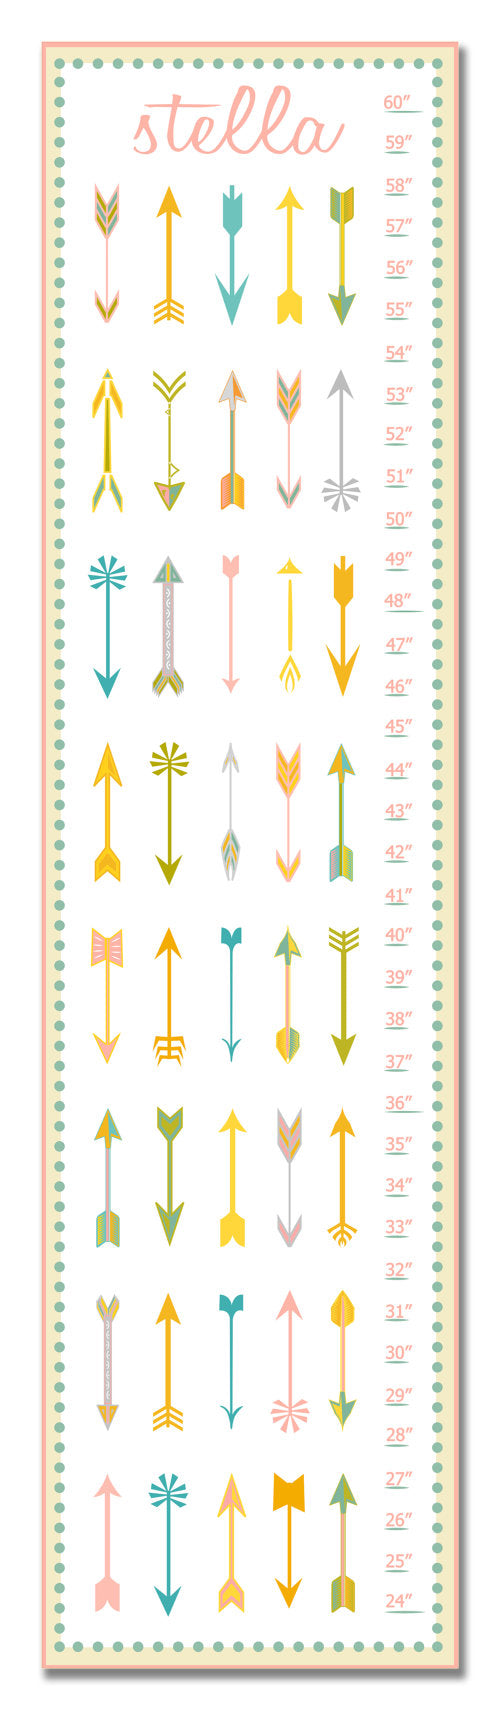 Arrows Personalized Growth Chart - Nursery Decor - Baby Gifts